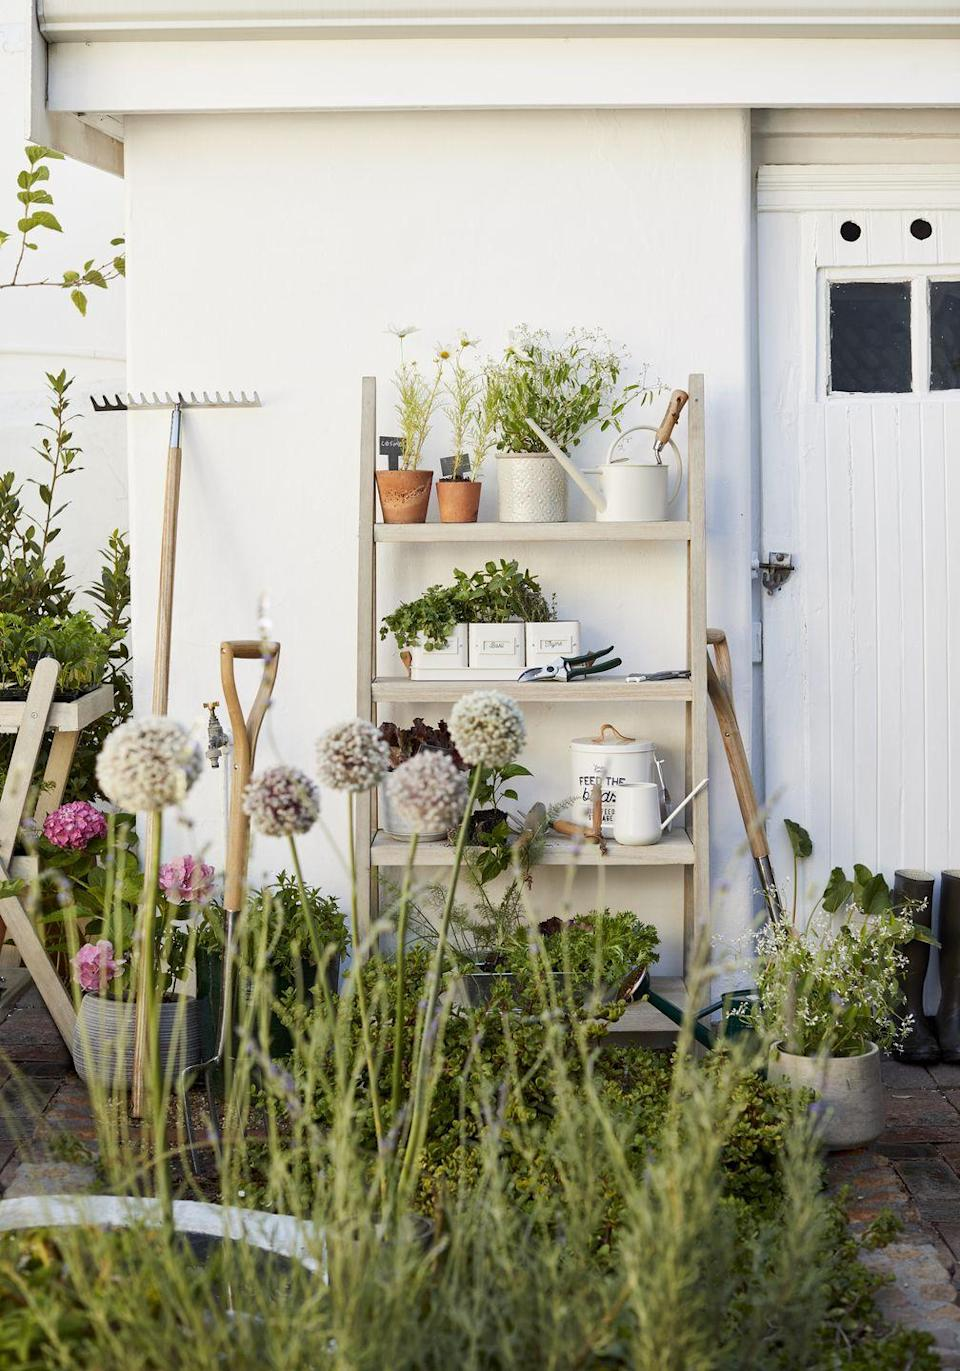 """<p>As the weather warms up, it's the ideal time to slip on your <a href=""""https://www.housebeautiful.com/uk/garden/g31246169/gardening-gloves/"""" rel=""""nofollow noopener"""" target=""""_blank"""" data-ylk=""""slk:gardening gloves"""" class=""""link rapid-noclick-resp"""">gardening gloves</a> and tend to your outdoor space. Designed with four shelves of varying depths, this ladder-style shelving unit is ideal for neatly displaying pots, plants and garden accessories.</p><p><a class=""""link rapid-noclick-resp"""" href=""""https://go.redirectingat.com?id=127X1599956&url=https%3A%2F%2Fwww.johnlewis.com%2Fjohn-lewis-partners-burford-garden-tall-garden-shelf-ladder-fsc-certified-eucalyptus-wood%2Fp3809267&sref=https%3A%2F%2Fwww.redonline.co.uk%2Finteriors%2Fhomeware%2Fg36003381%2Fjohn-lewis-garden-collection-spring-summer%2F"""" rel=""""nofollow noopener"""" target=""""_blank"""" data-ylk=""""slk:SHOP NOW"""">SHOP NOW</a></p>"""